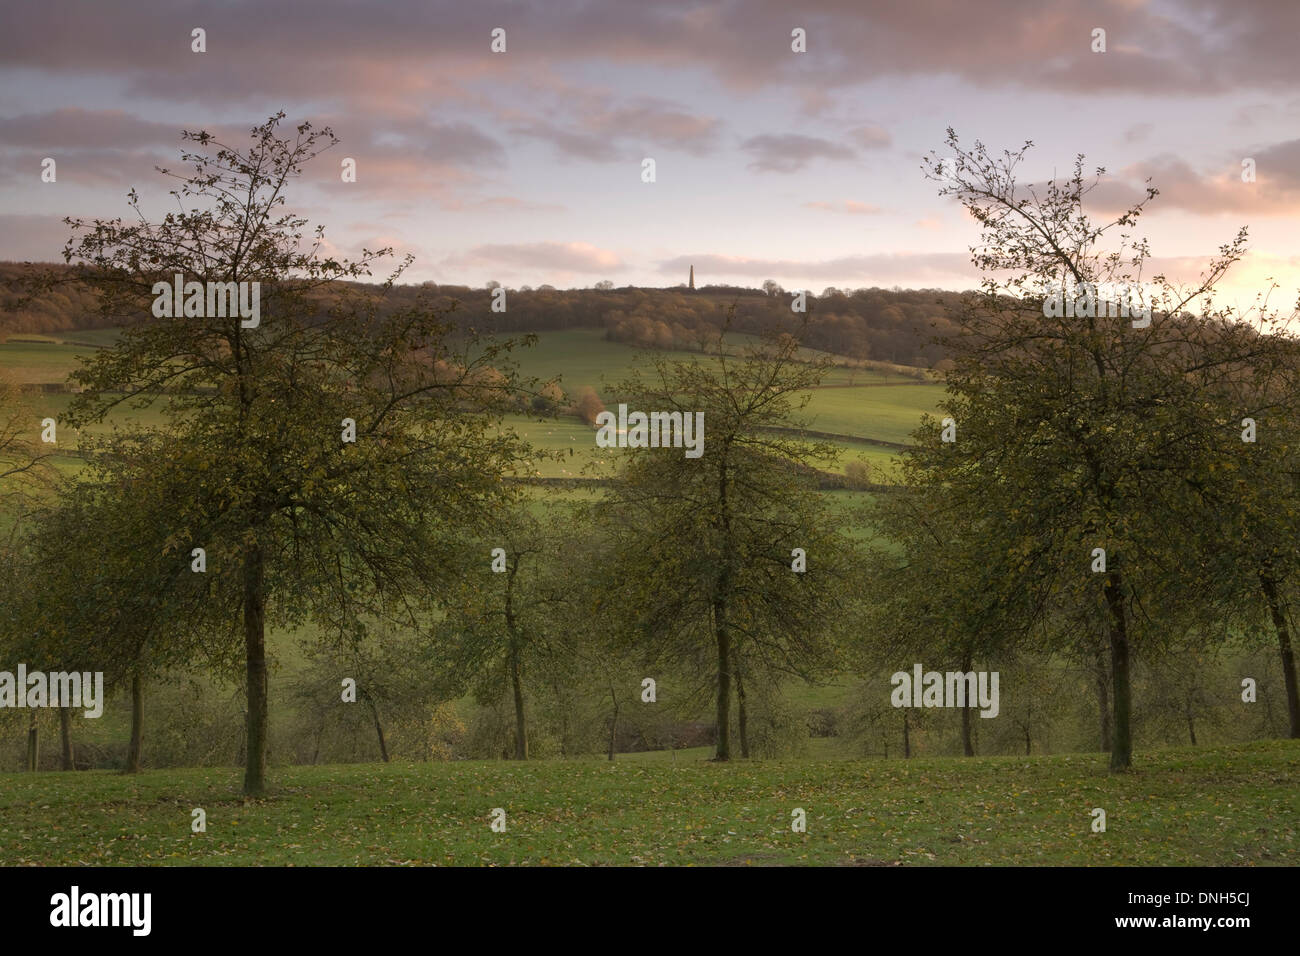 An Apple Orchard in Herefordshire over looks the Malvern Hills at sunset. Stock Photo